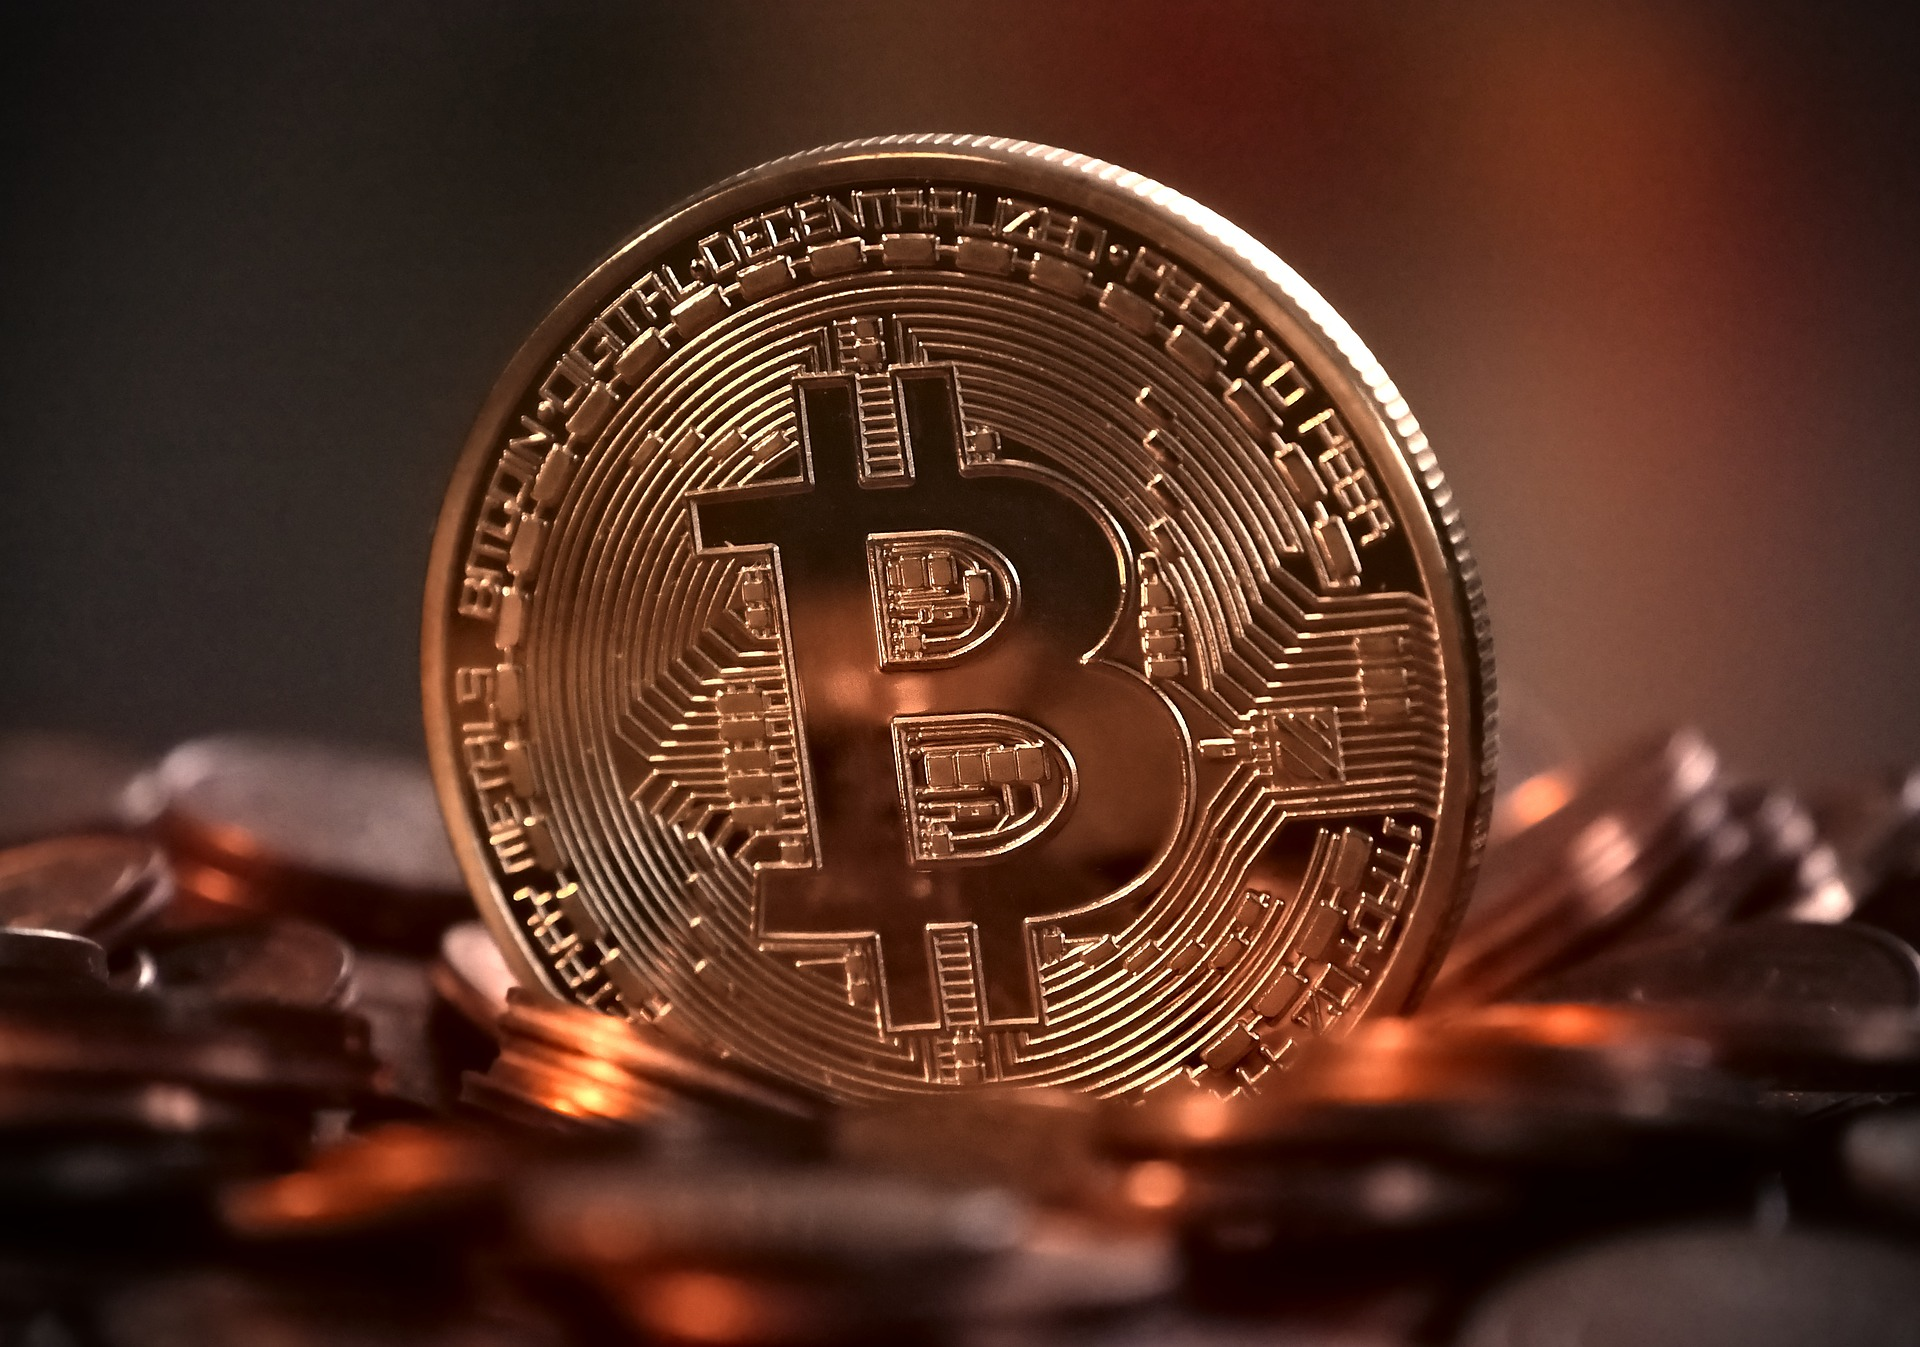 A gold bitcoin coin